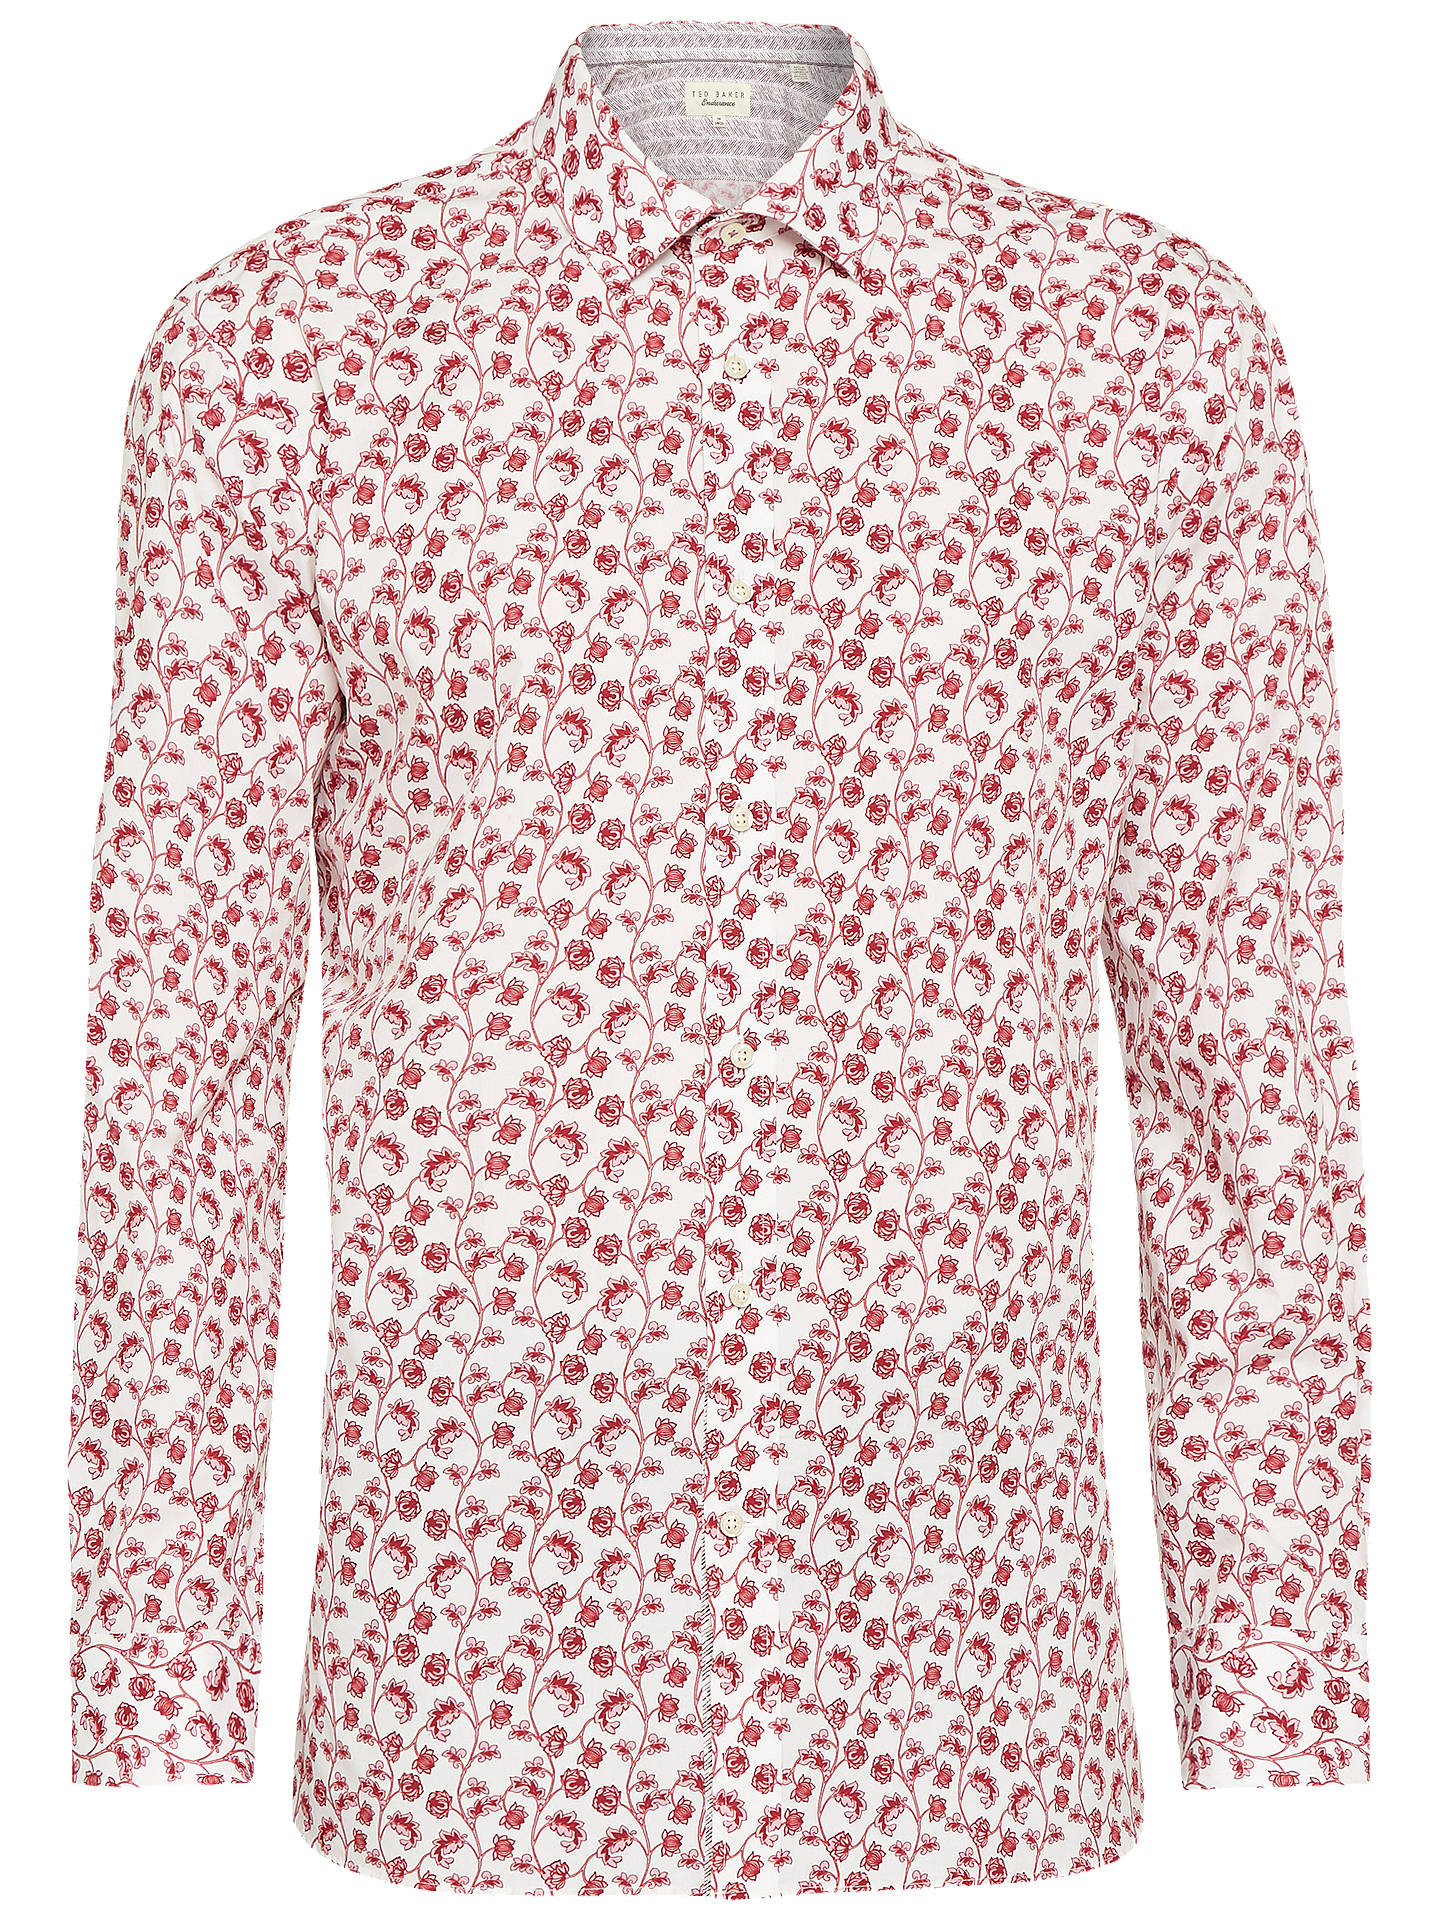 BuyTed Baker Greck Floral Tailored Fit Shirt, Pink, 15.5 Online at johnlewis.com